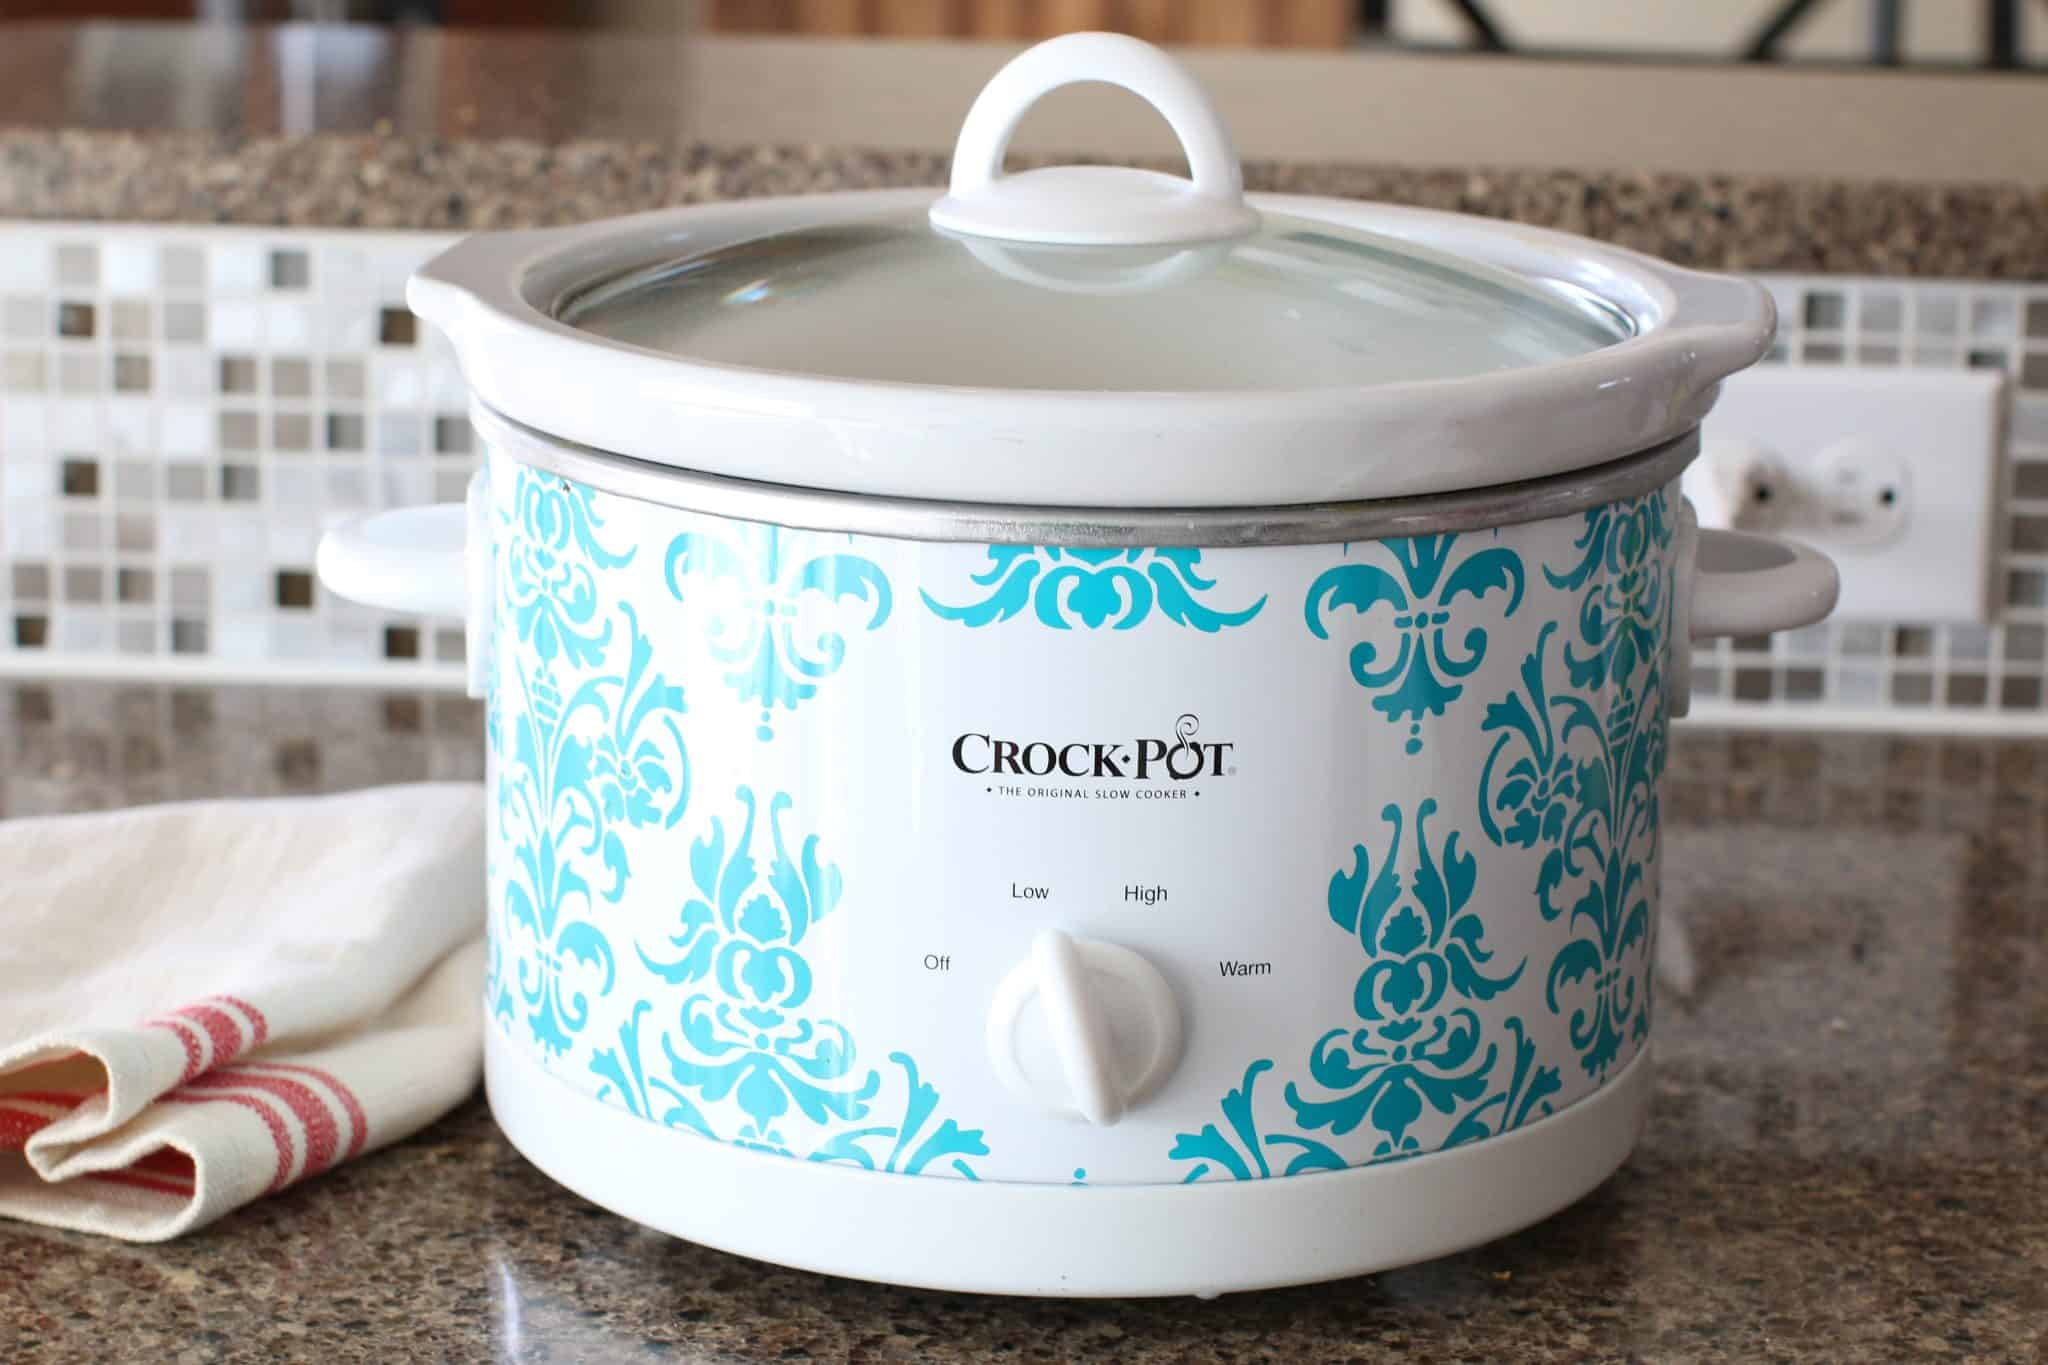 A white and light blue 3.5 quart crock pot with a lid on top.